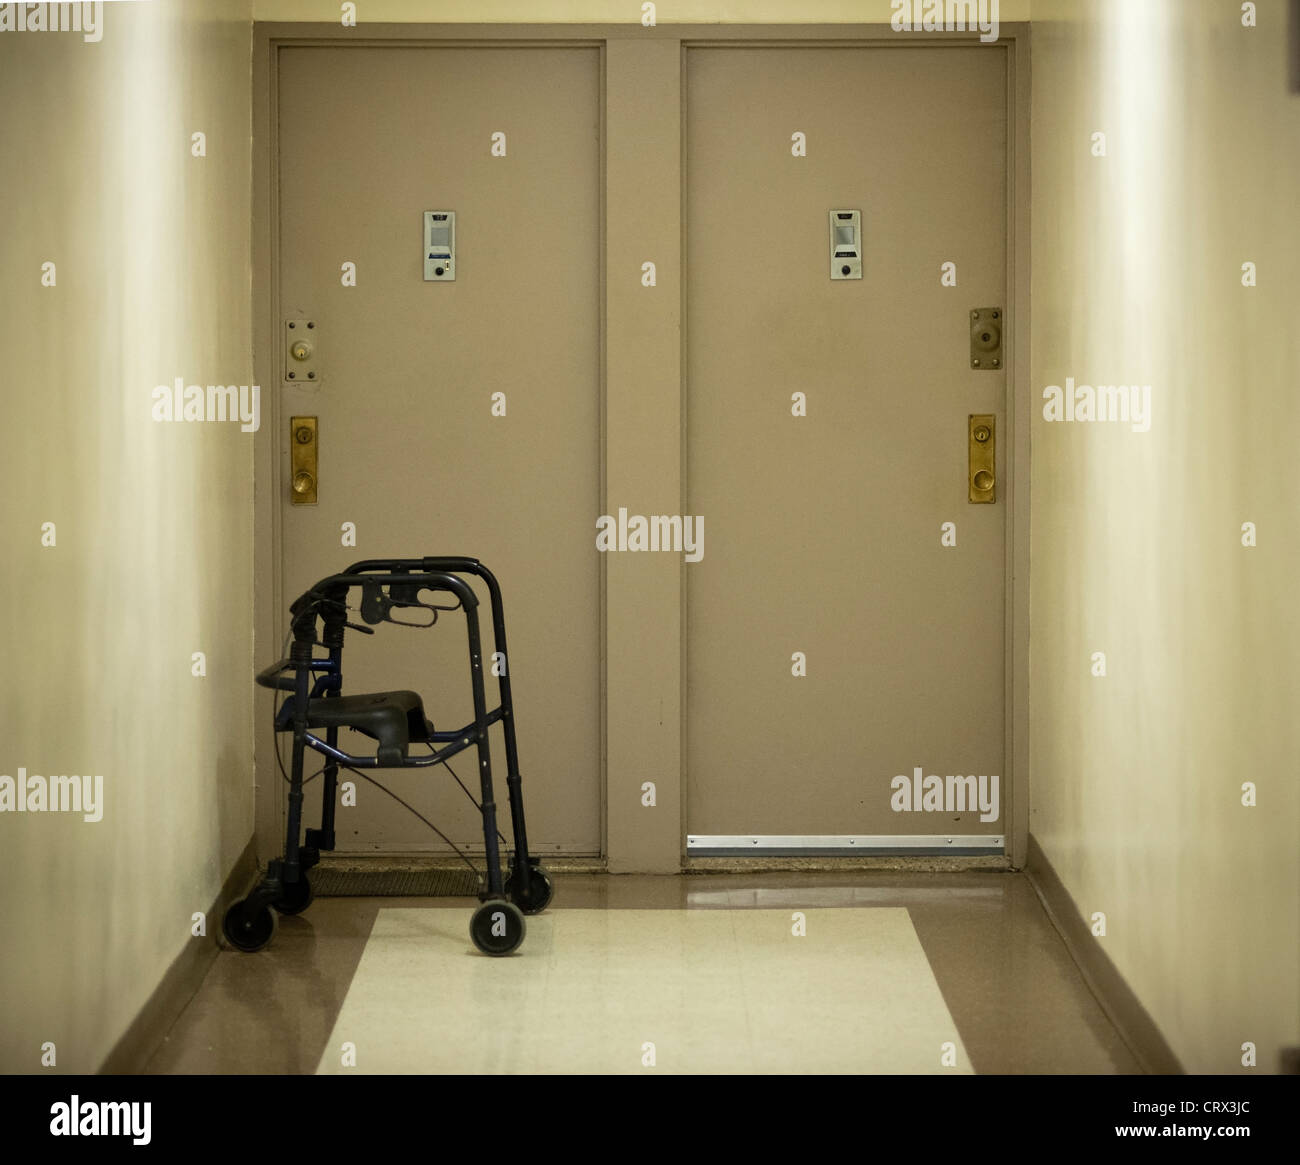 New York Apartments Outside: A Walker In A Hallway Outside An Apartment Door In The New